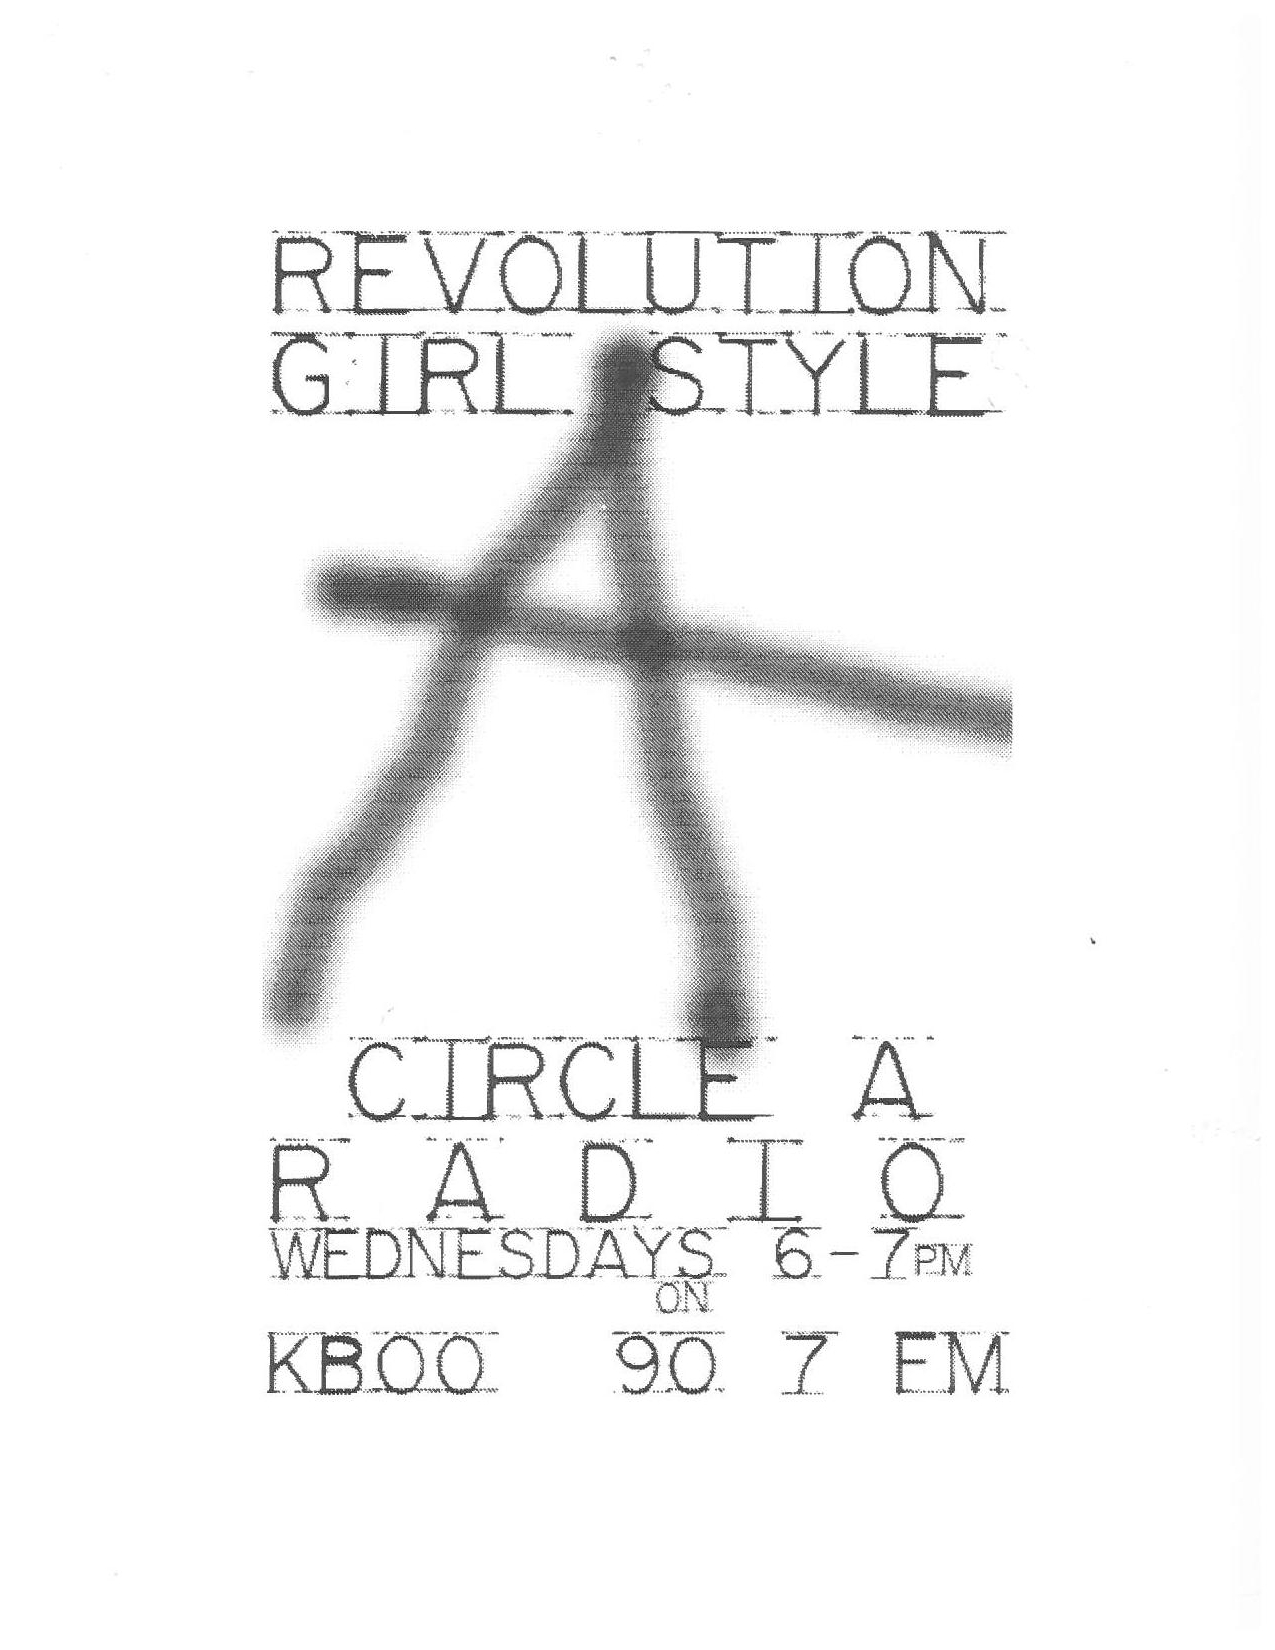 KBOO_posters_026_RevolutionGirlStyle_rotated-page-001.jpg